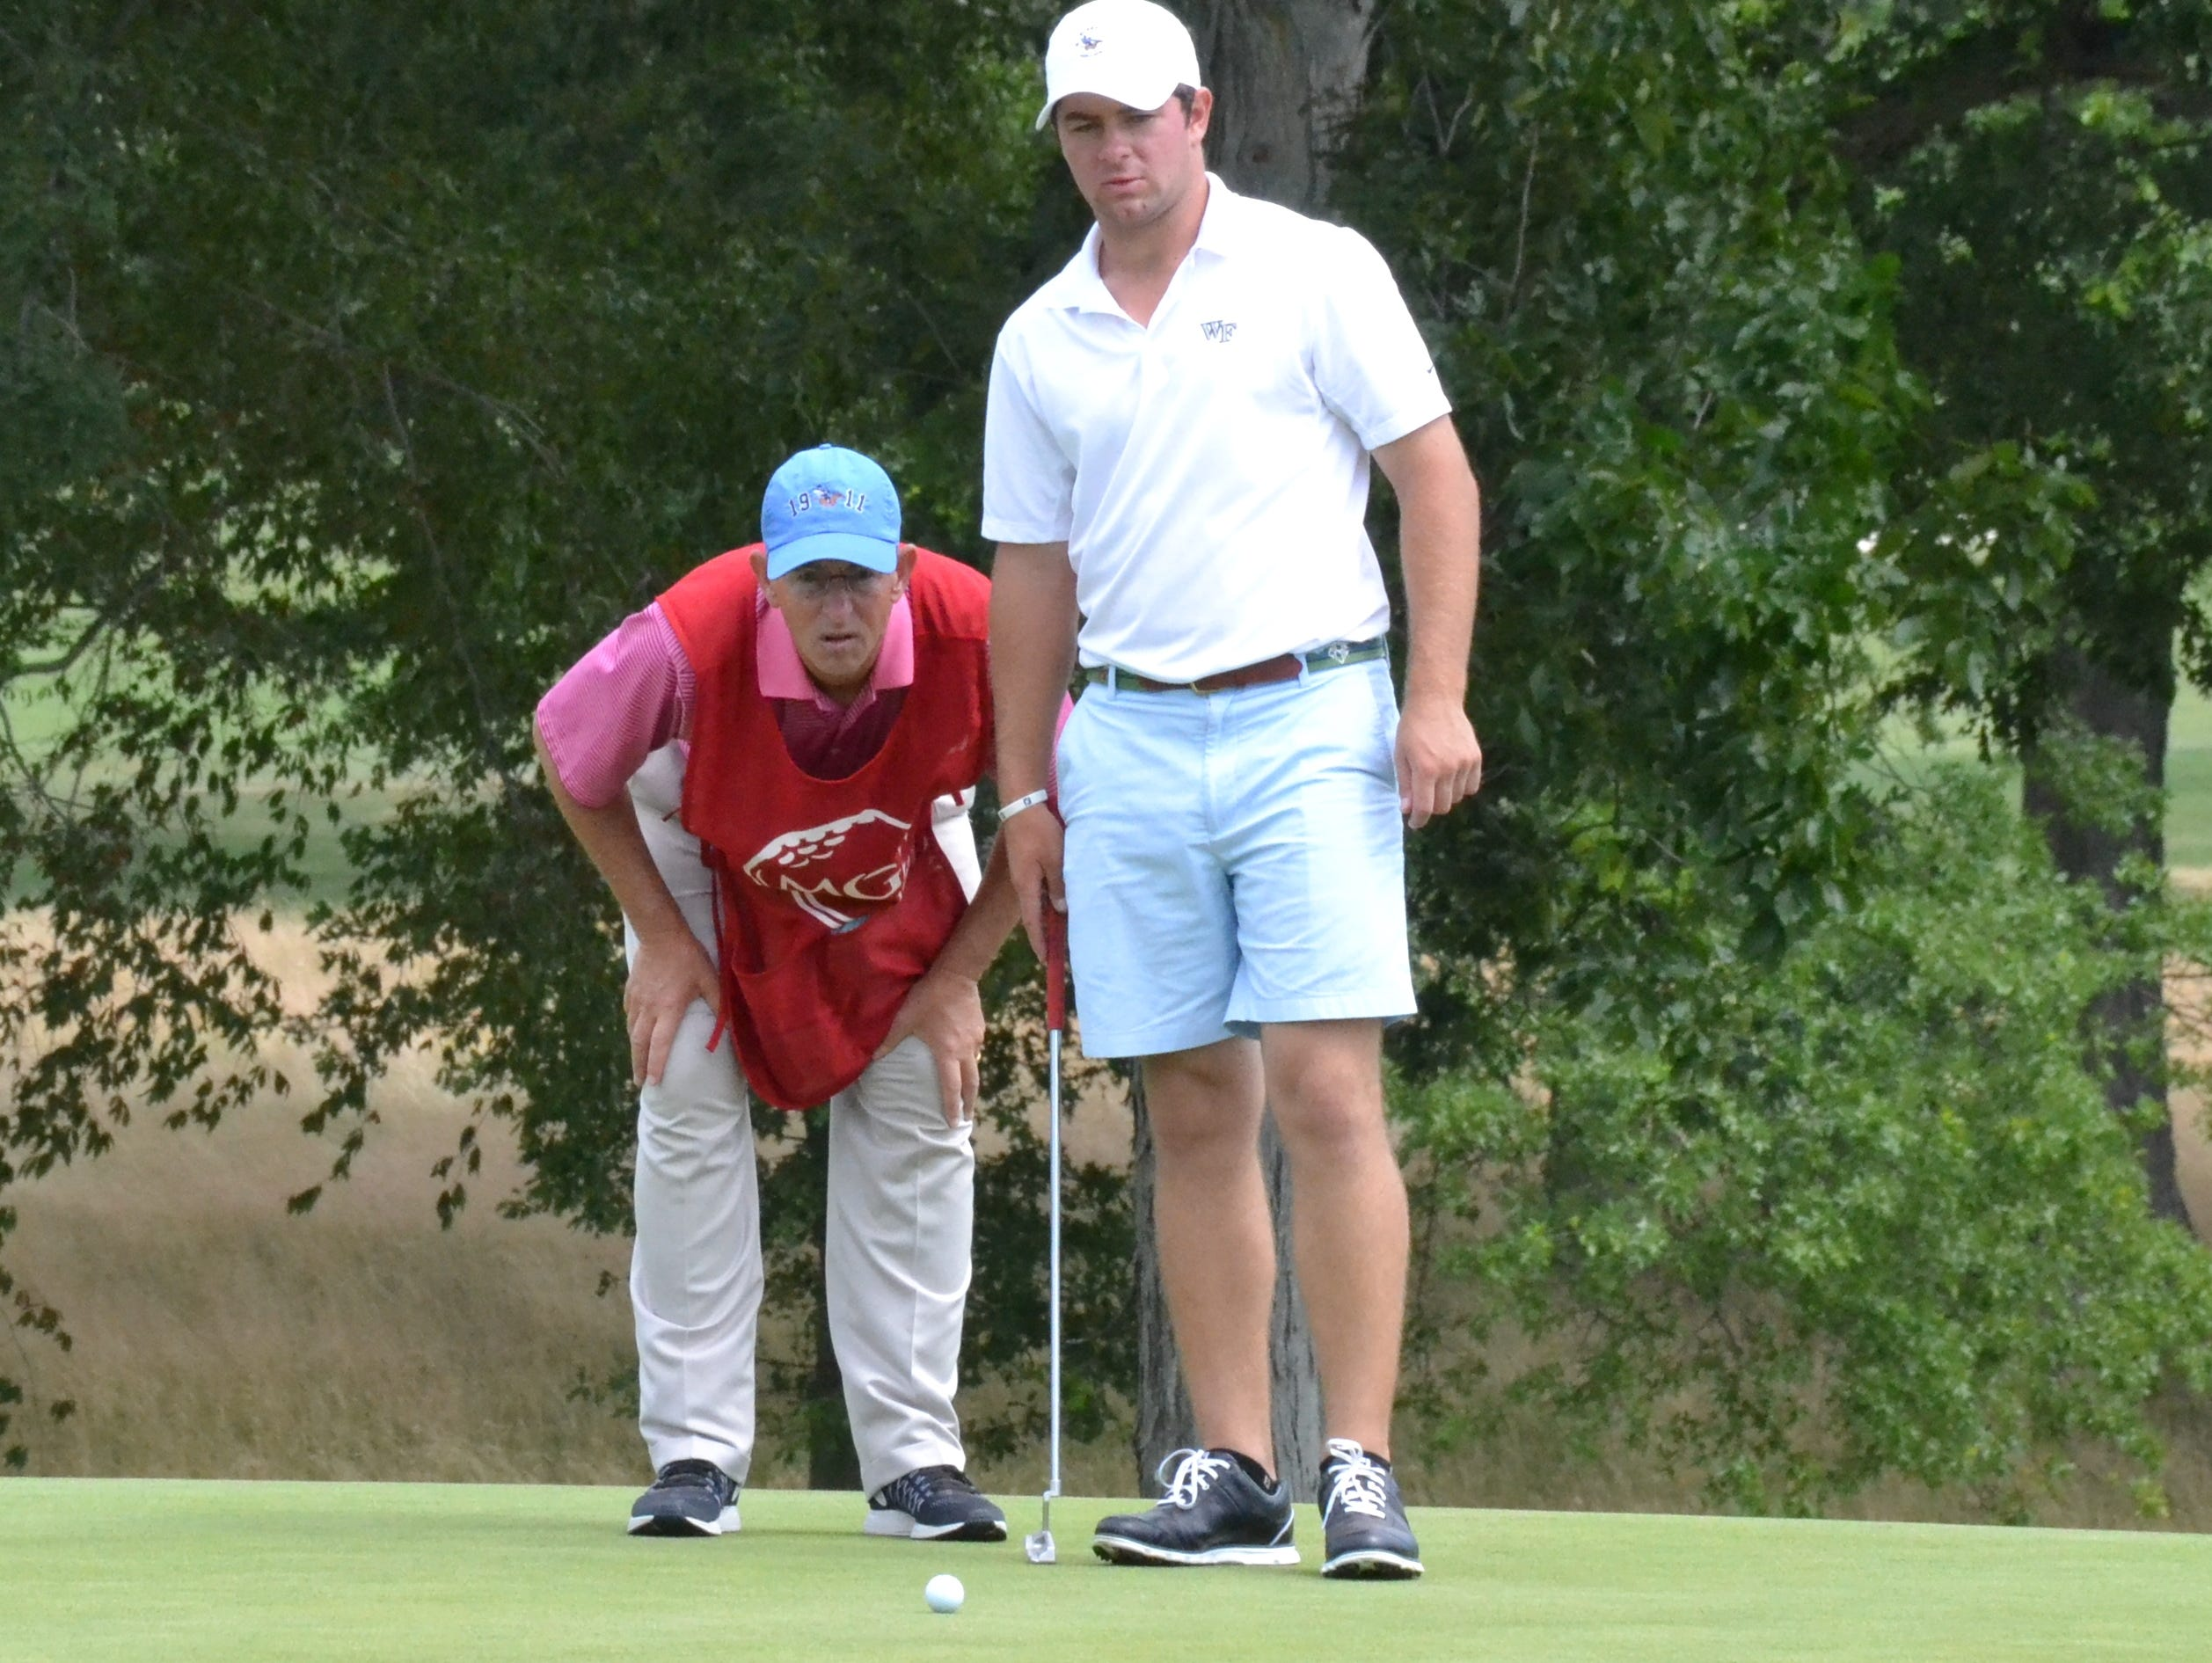 Cameron Young looks over a putt Monday during the first round of the Ike Championship while his father, Sleepy Hollow C.C. head pro David Young gets a closer look. The defending champion opened with an even-par 71 and is eight shots off the lead.